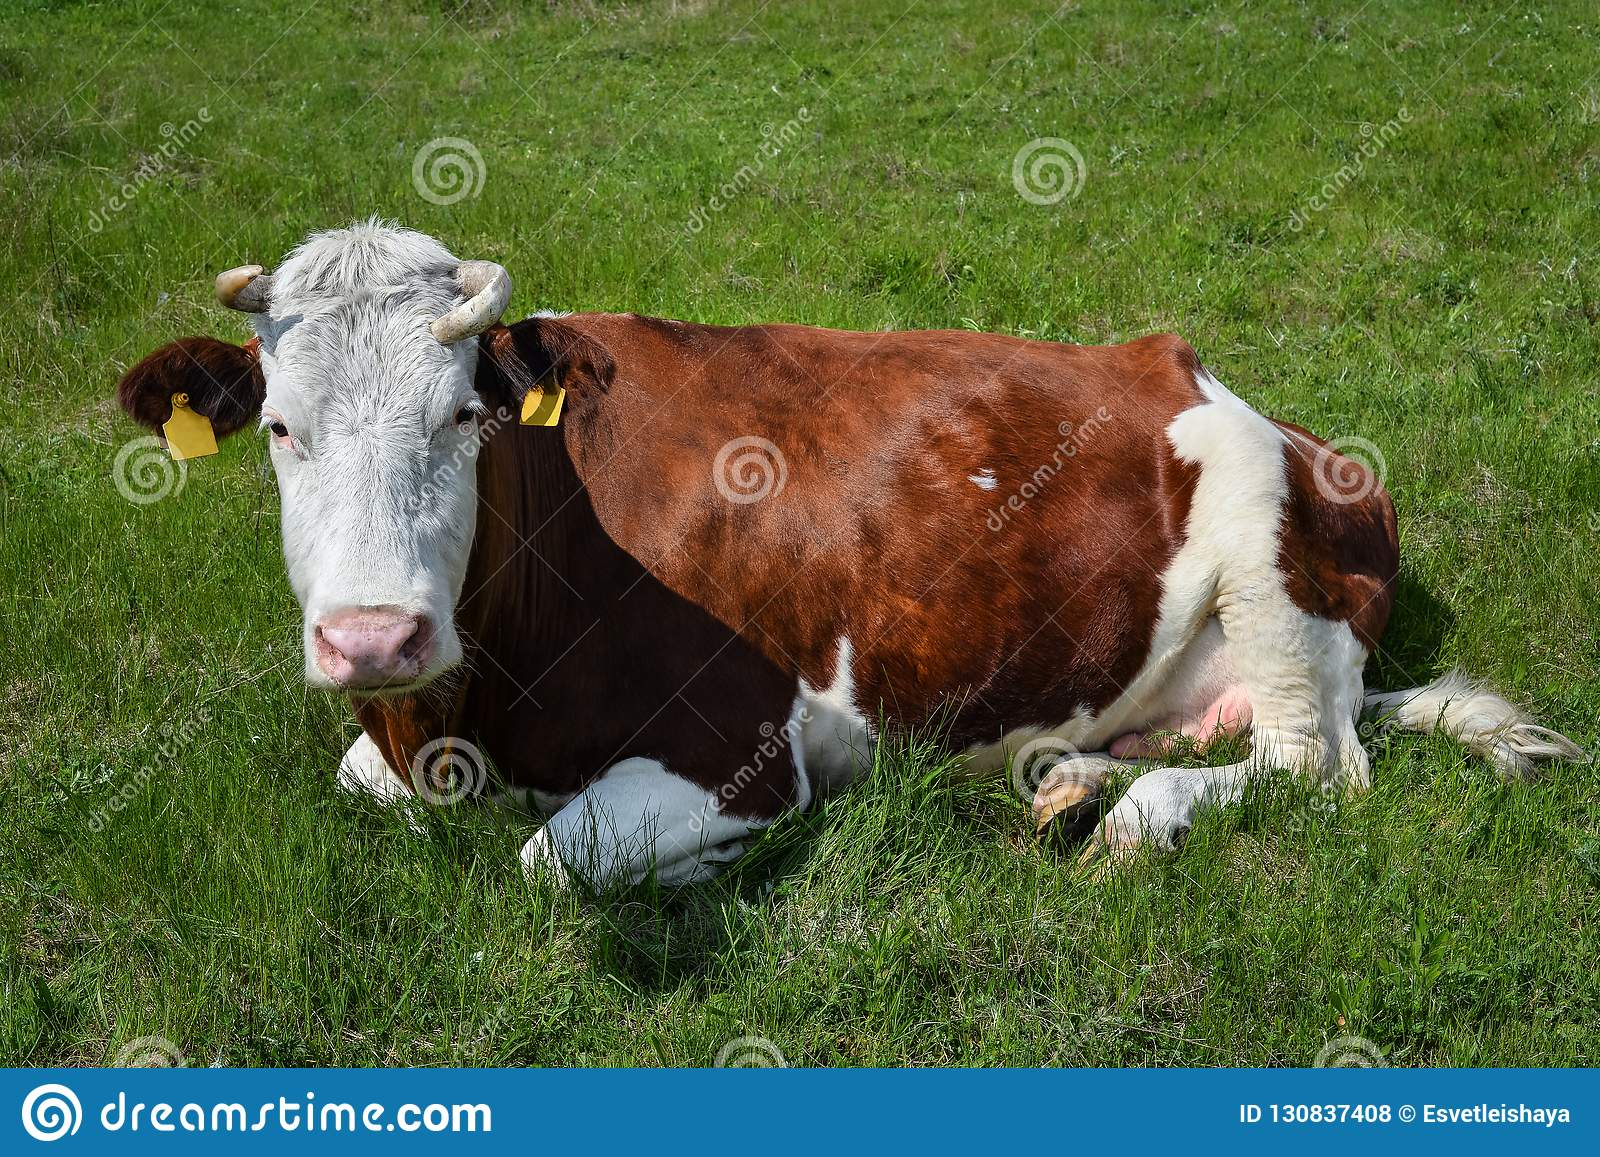 Cow on a spring farm pasture. Very funny black and white cow lies on the grass and looks at the camera. Farm animals.